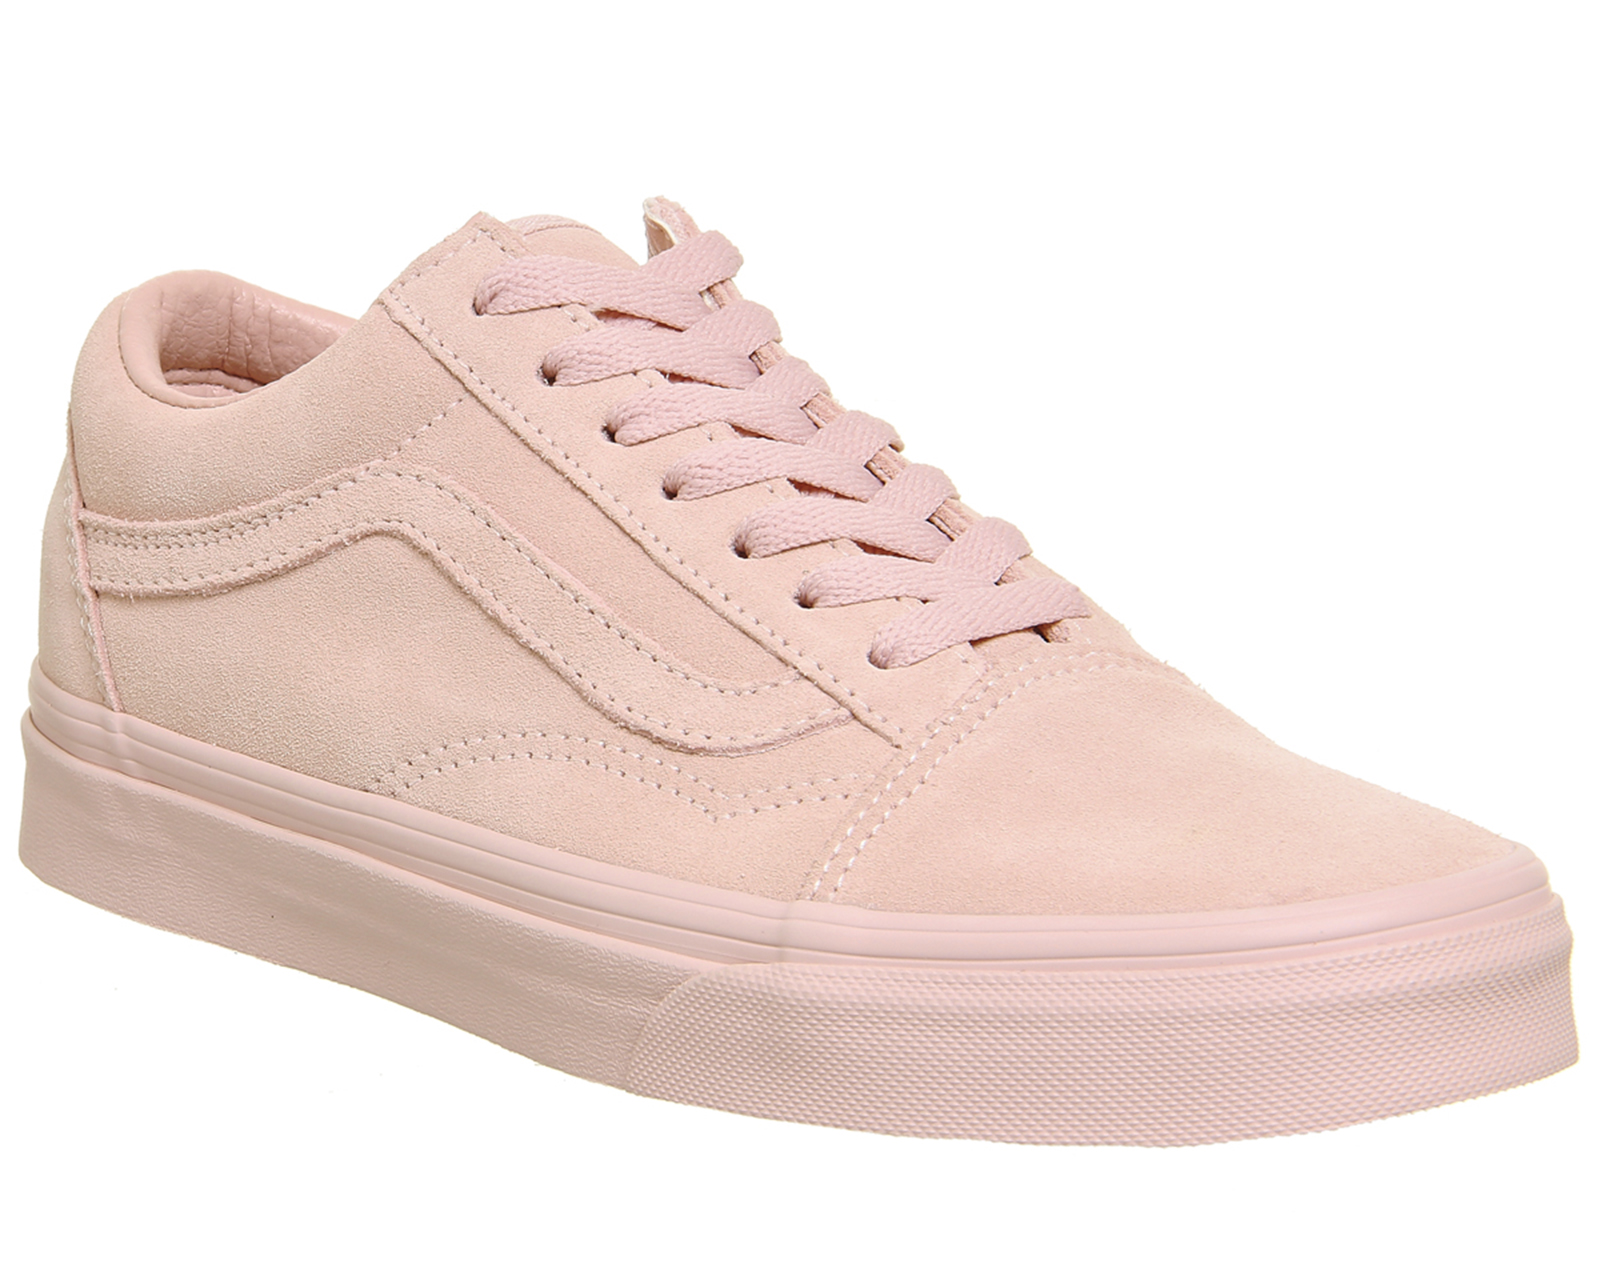 9f3b44c78b871c Sentinel Mens Vans Old Skool Trainers Peachskin Suede Exclusive Trainers  Shoes